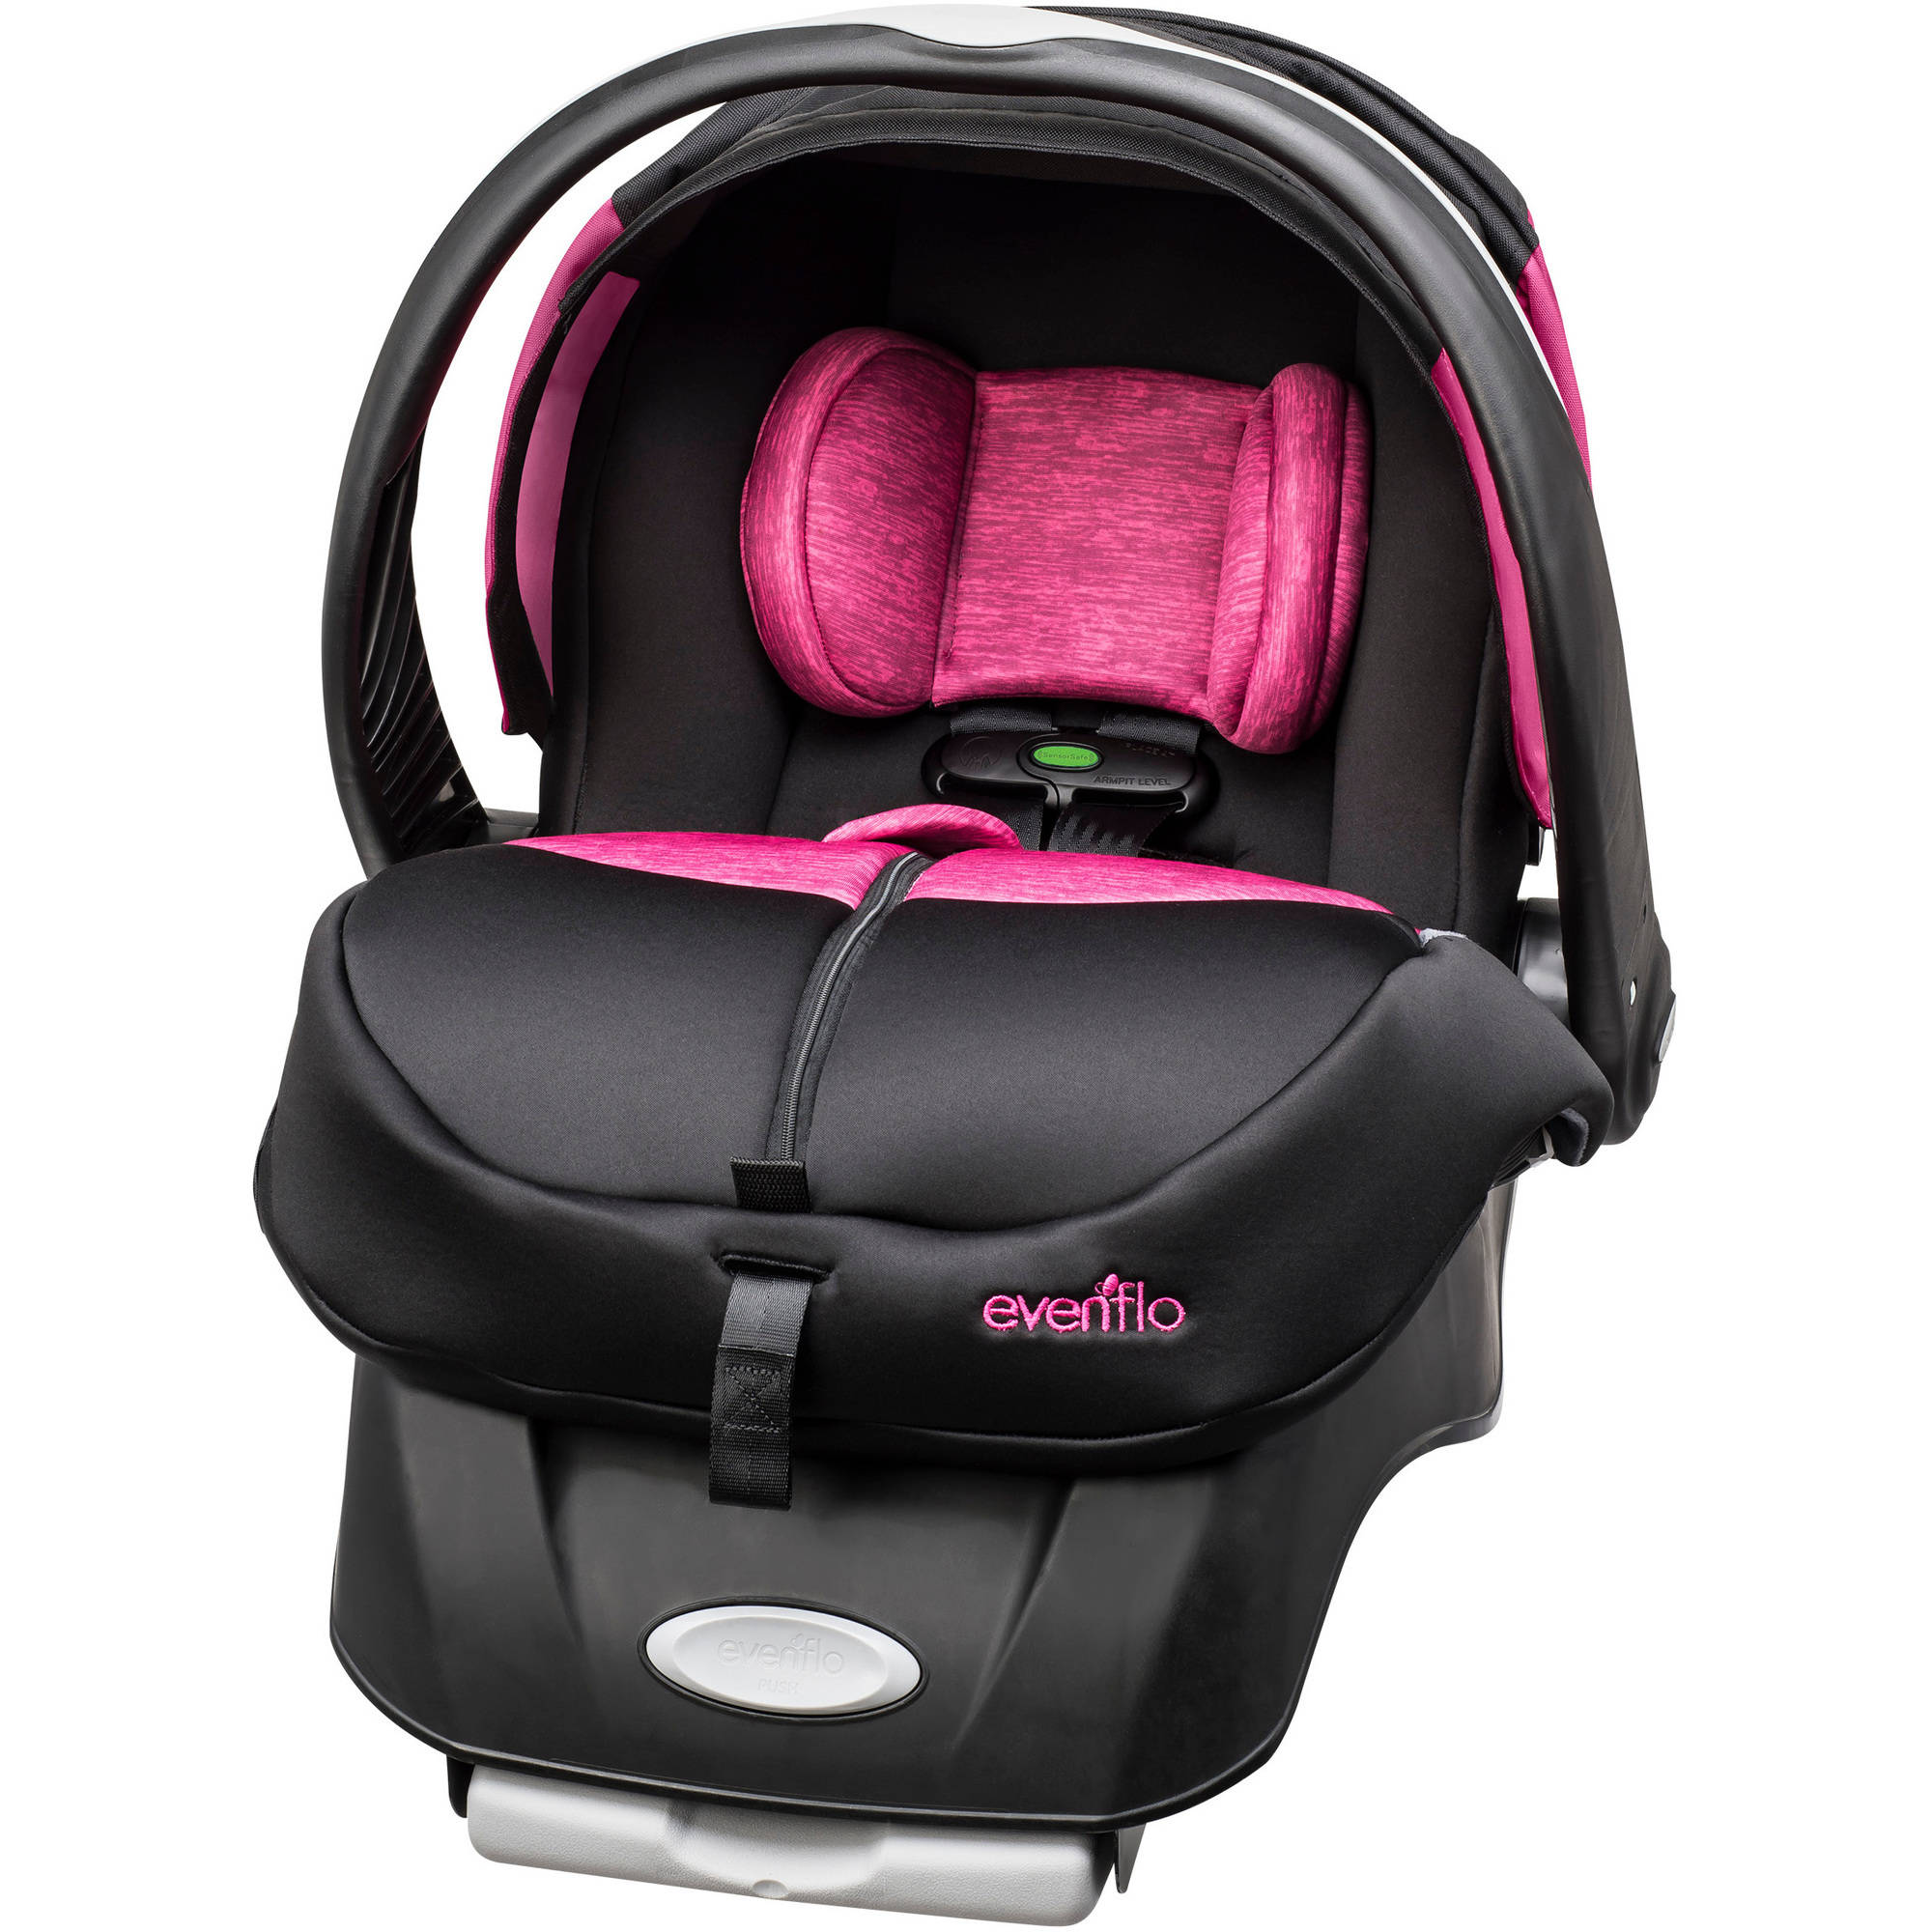 Evenflo Advanced Embrace DLX Infant Car Seat with SensorSafe, Kona